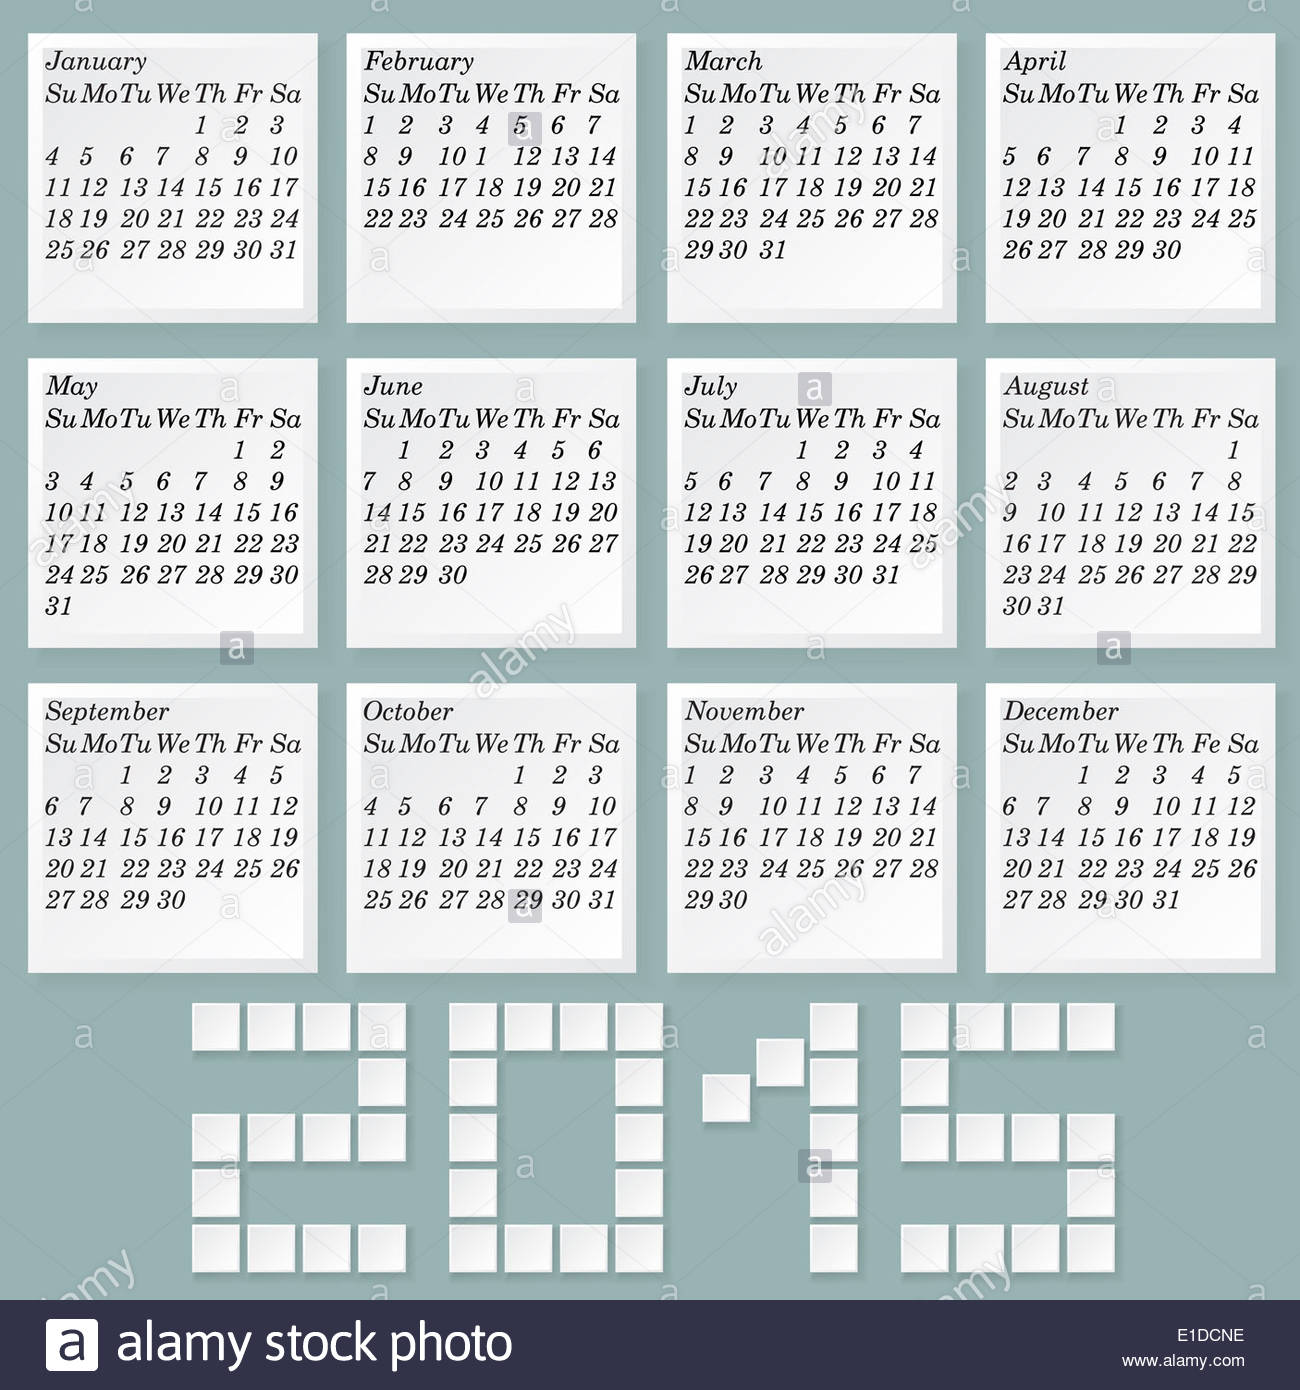 simple 2015 calendar months style notes with shadows week starts with sunday without holidays mark